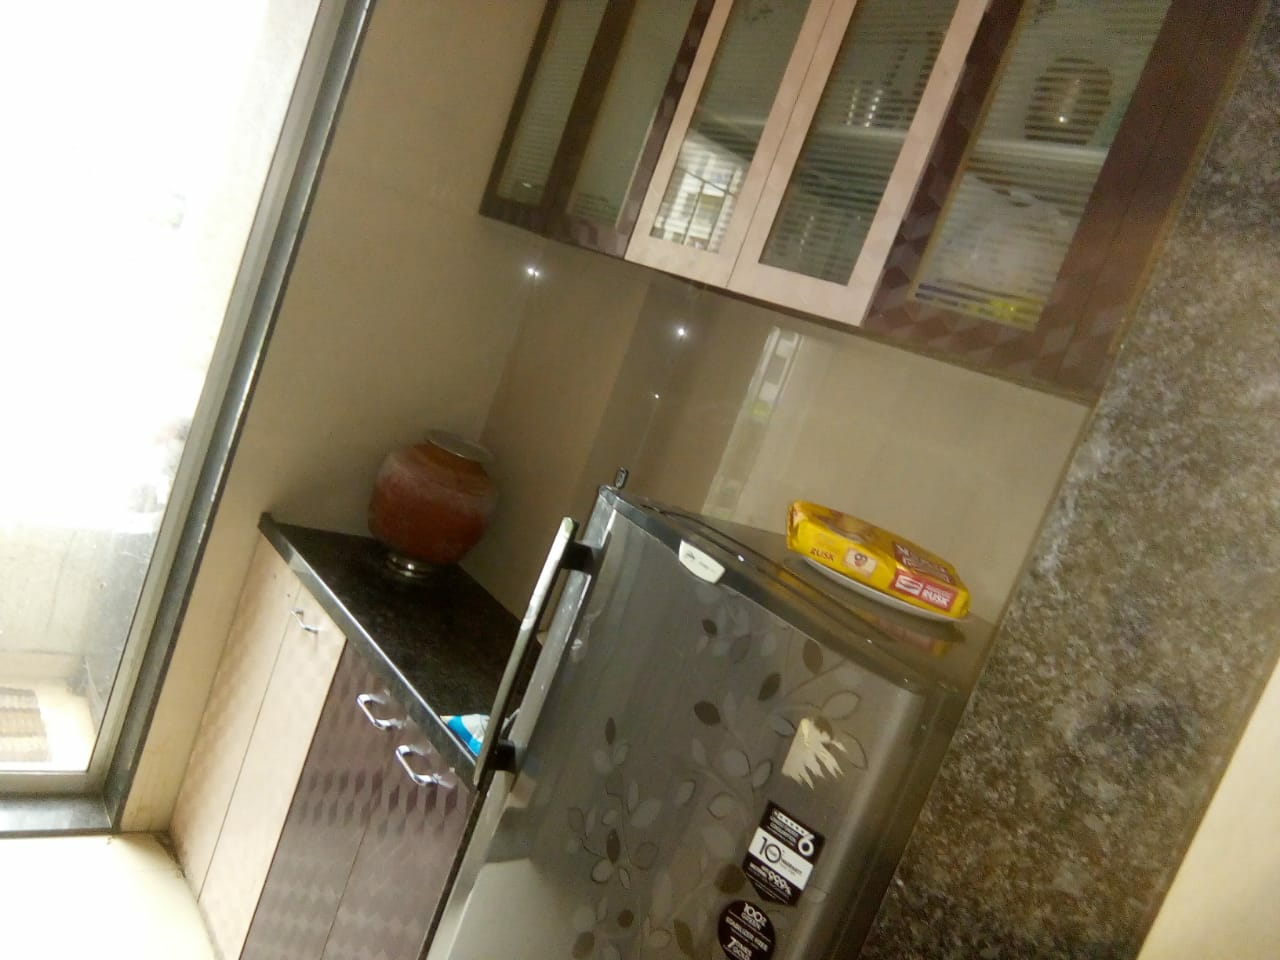 675 Sq Feet 1 Bhk Flat In Neelsidhi Amarante At 55 Lacs For Sale Id 6133 Panvel Navi Mumbai